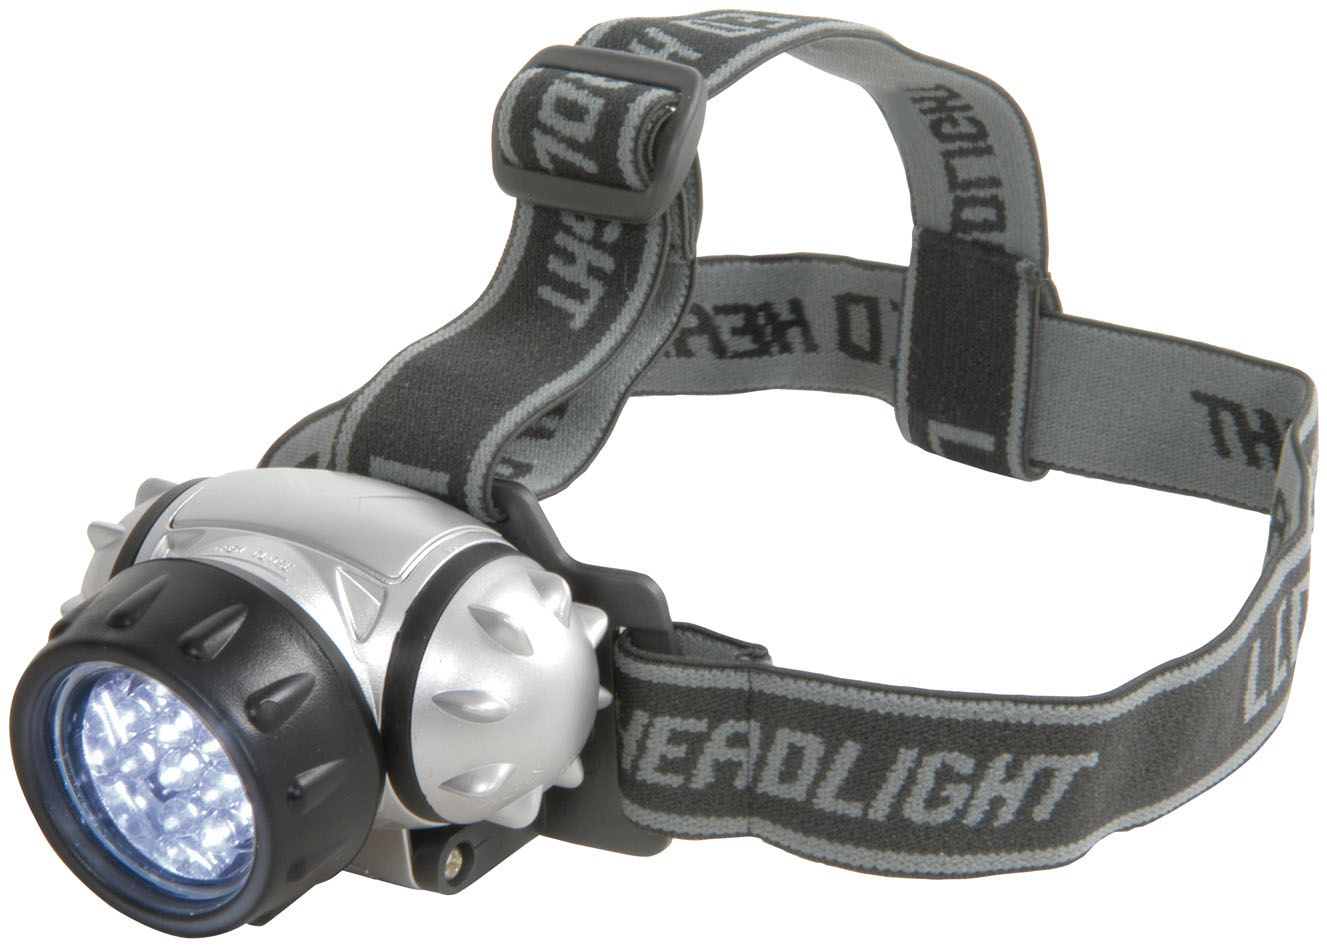 12 Led Headlight Hiking Camping Cycling Led Head Led Headlamp Outdoor Headlamp